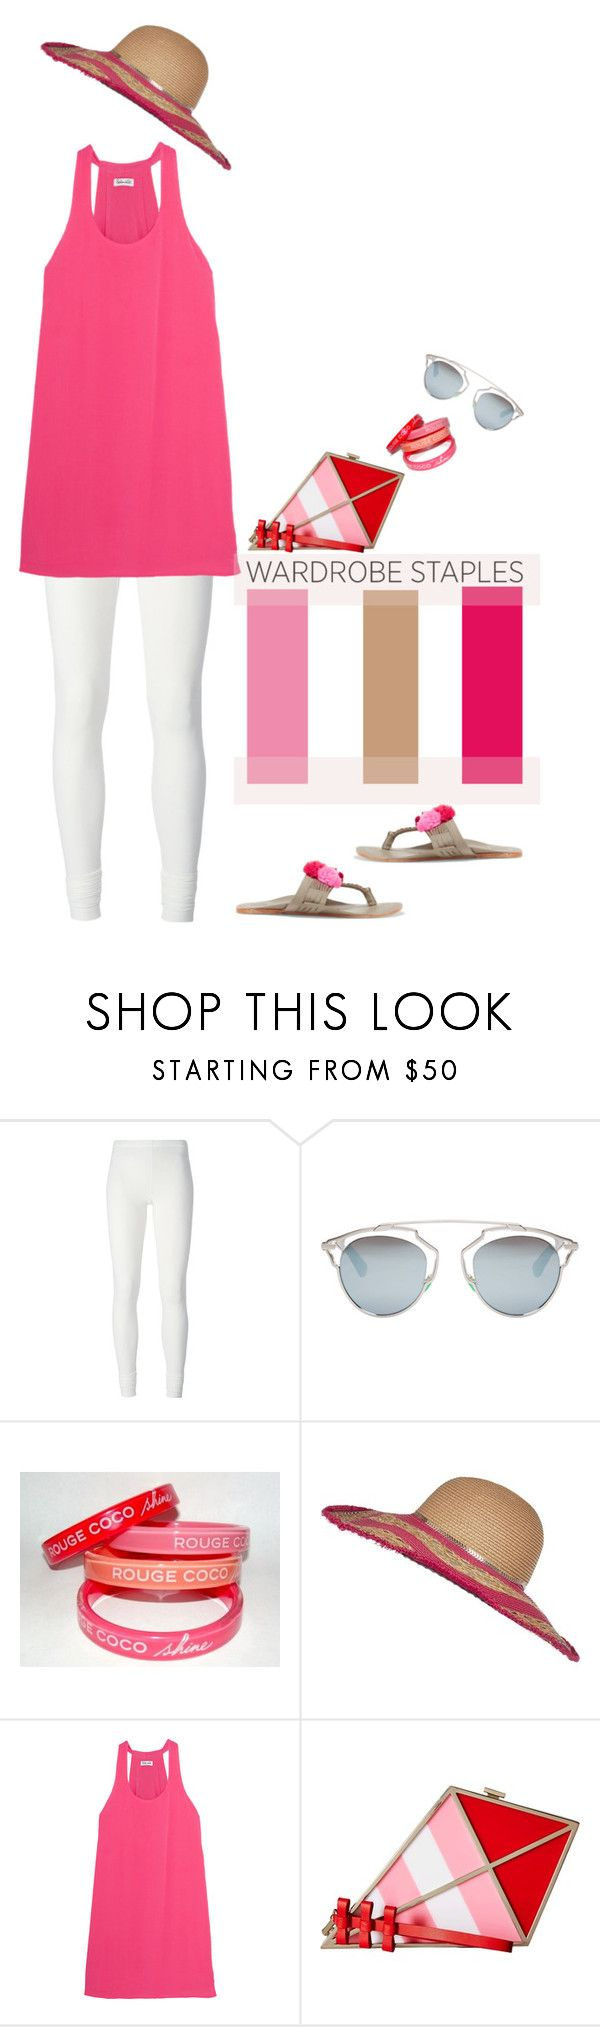 """Wardrobe Staples: Leggings'"" by dianefantasy ❤ liked on Polyvore featuring Rick Owens Lilies, Christian Dior, Chanel, River Island, Splendid, Kate Spade, Figue, Leggings, polyvorecommunity and polyvoreeditorial"